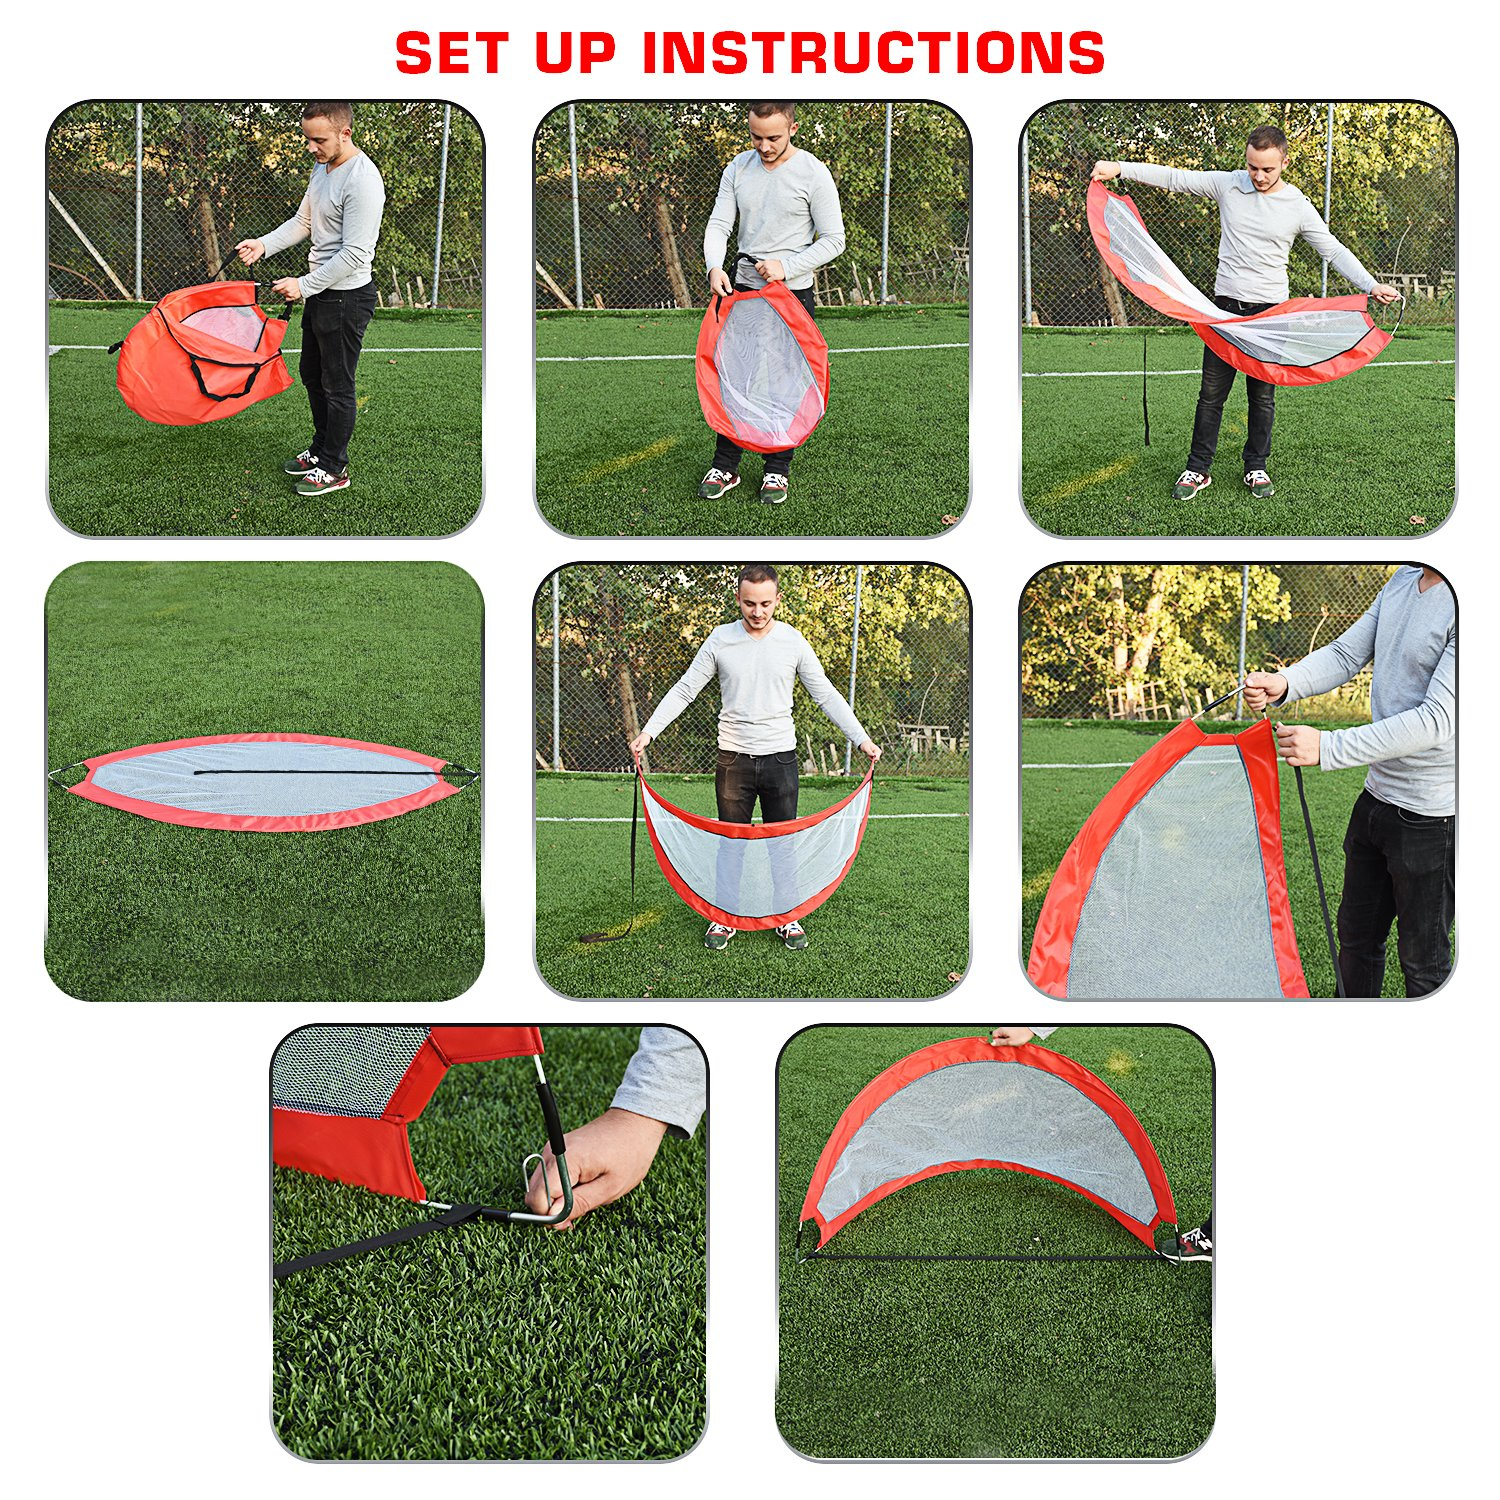 Abco Tech Portable Soccer Goal Set for Training, Practice & Game – Pop-up Soccer Net – 2 Soccer Goals, 6 Disc Cones & 8 Spikes – Carry Bag – Easy to Assemble & Store – Be it Backyard or Public Fields by Abco Tech (Image #3)